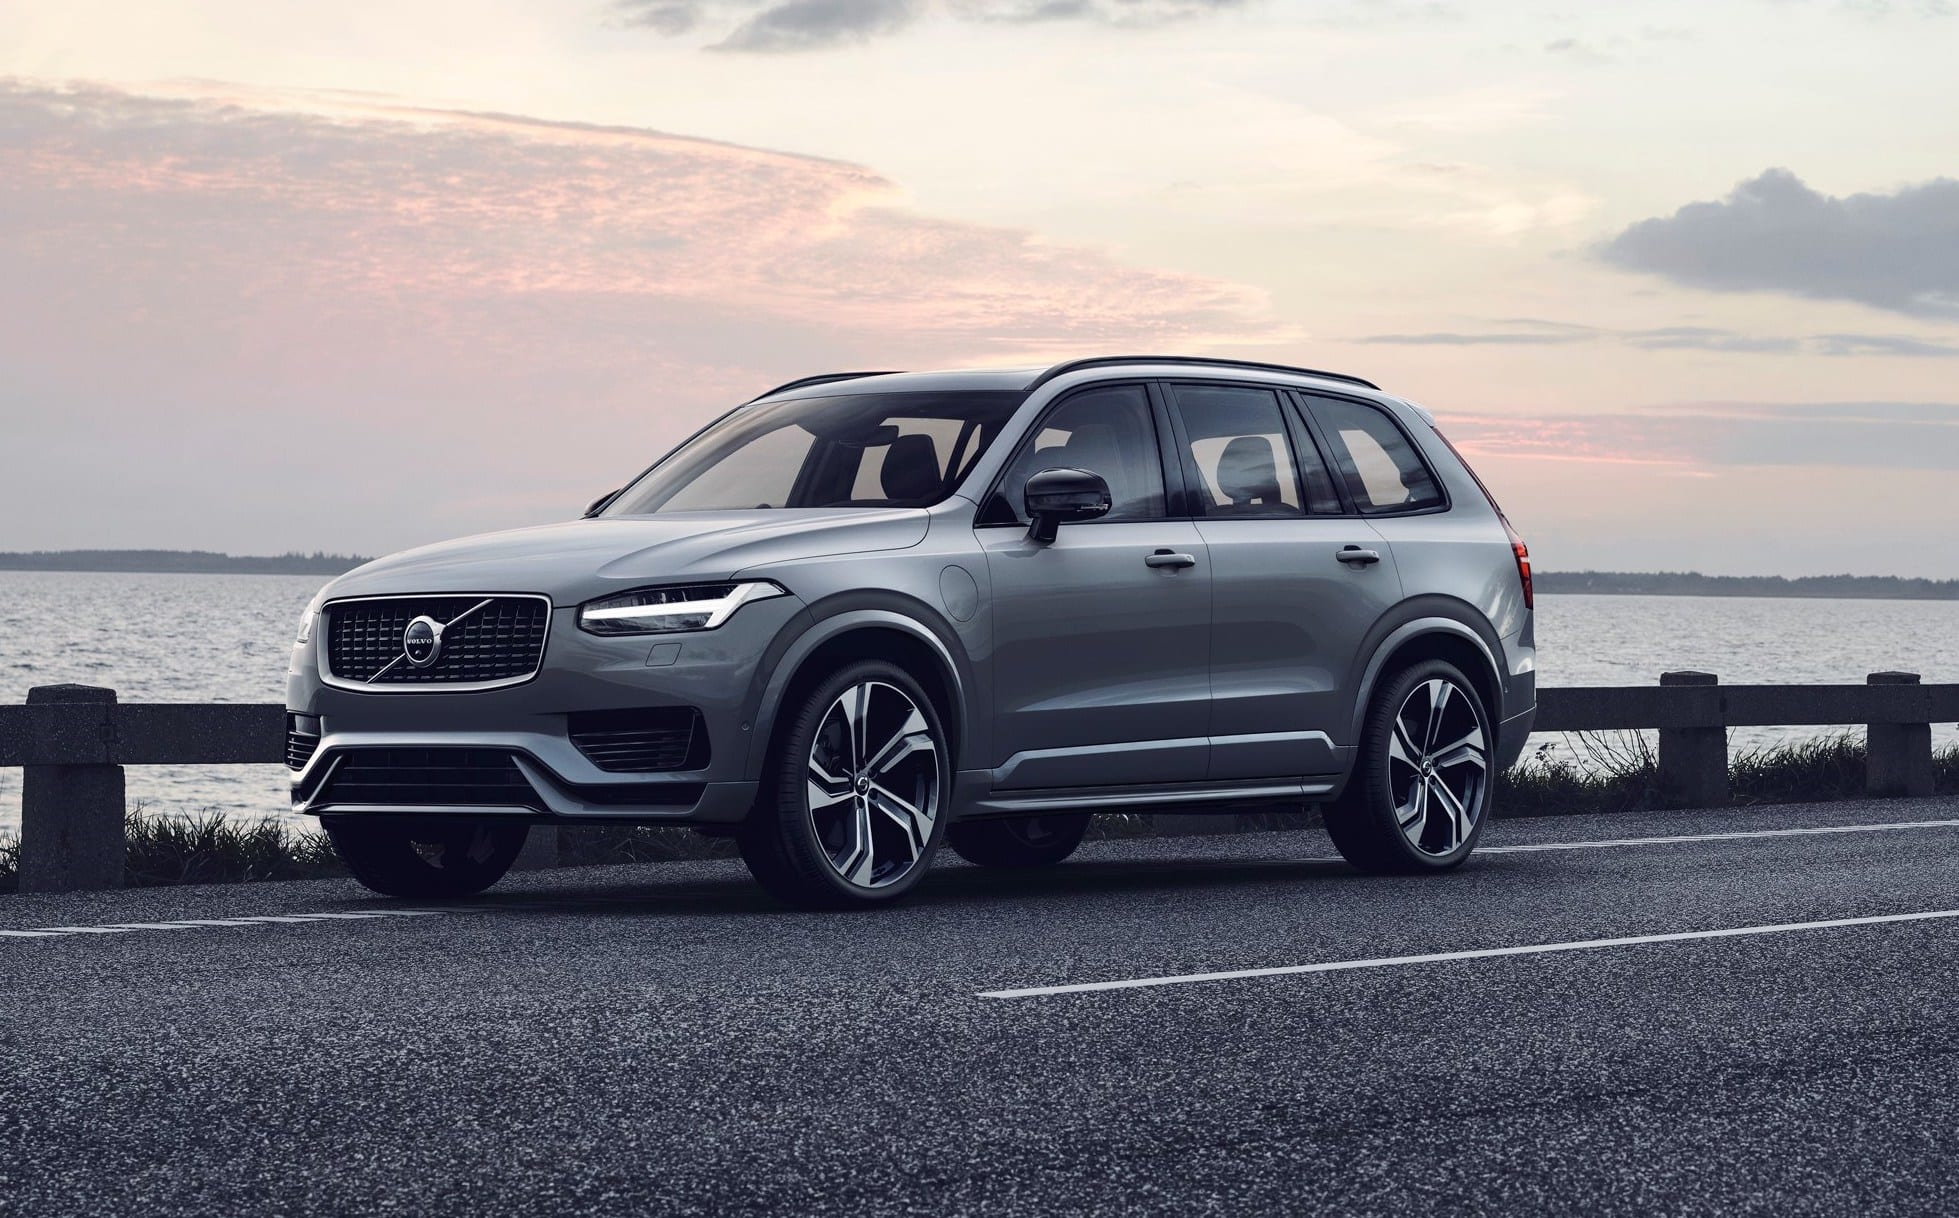 2020 volvo xc90 facelift specifications and features unveiled